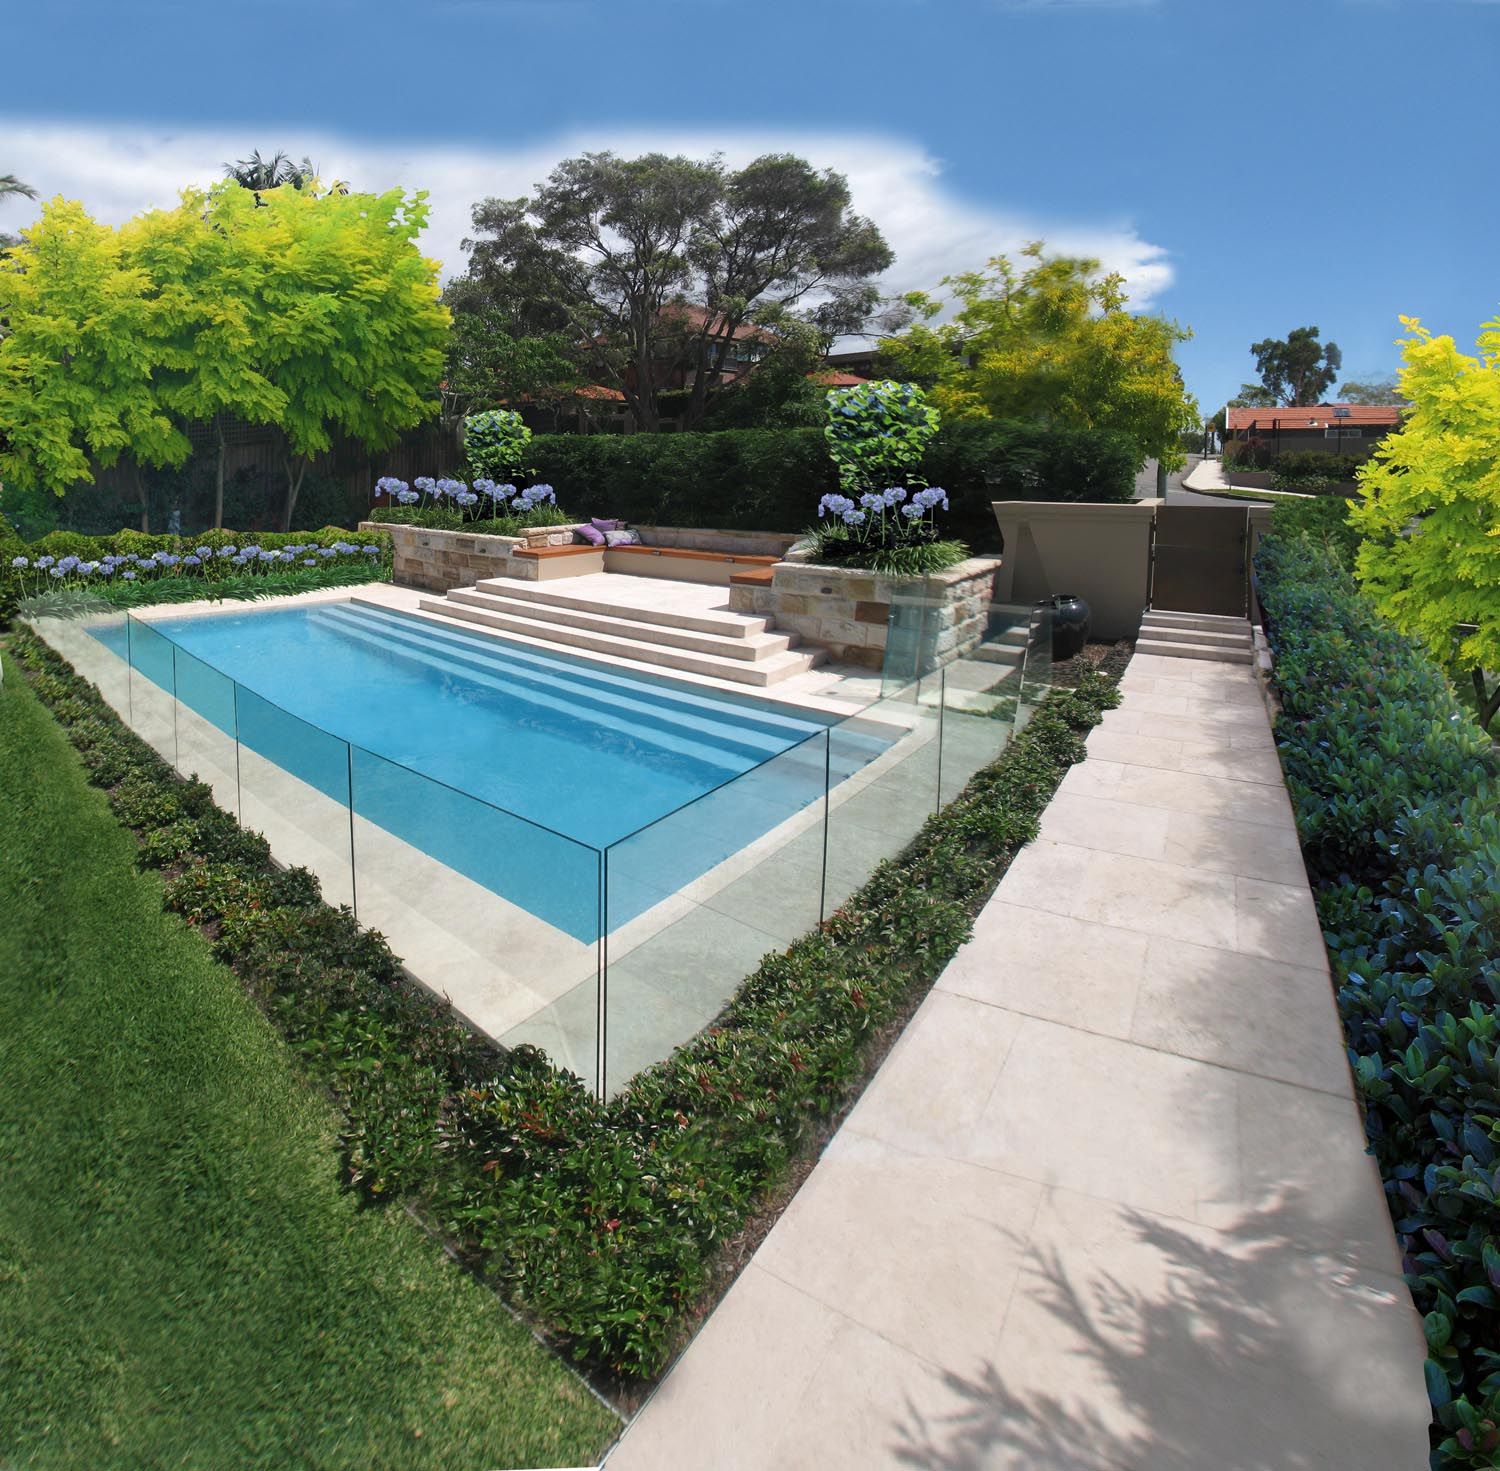 Corner view of a modern pool surrounded by a glass wall in the garden